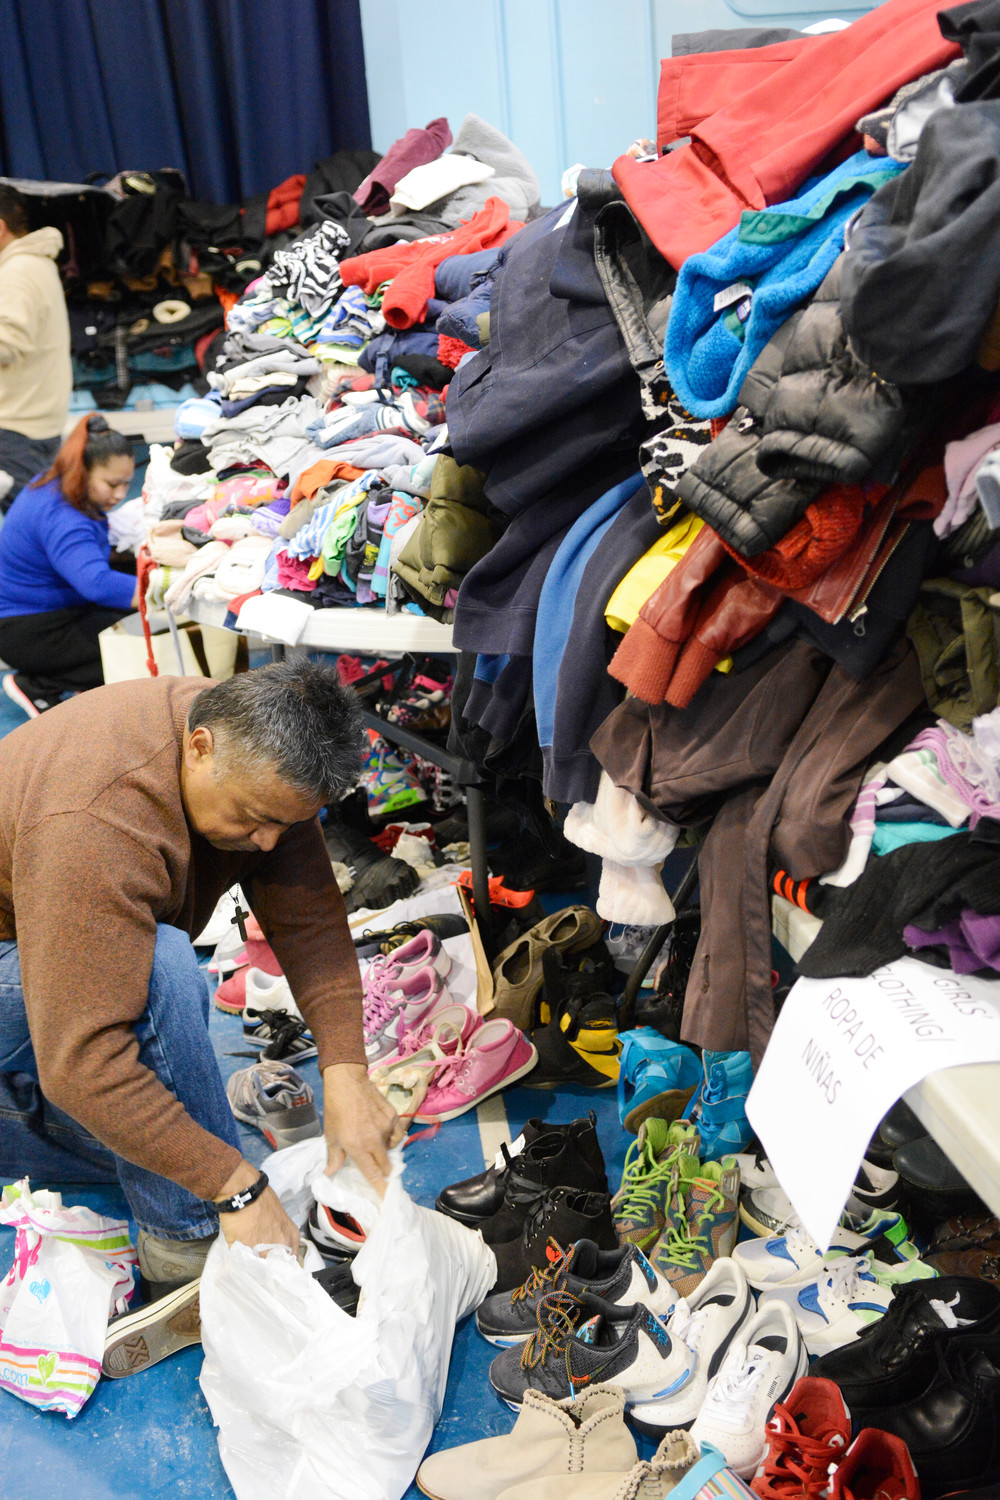 Santiago Gutierrez and Lorena Velasquez of St. Martin of Tours parish in the Bronx sort clothes on the gymnasium floor at the former St. Martin of Tours School during a community-wide clothing and food drive Dec. 30 to aid victims of an apartment fire that broke out two days earlier and claimed 12 lives.